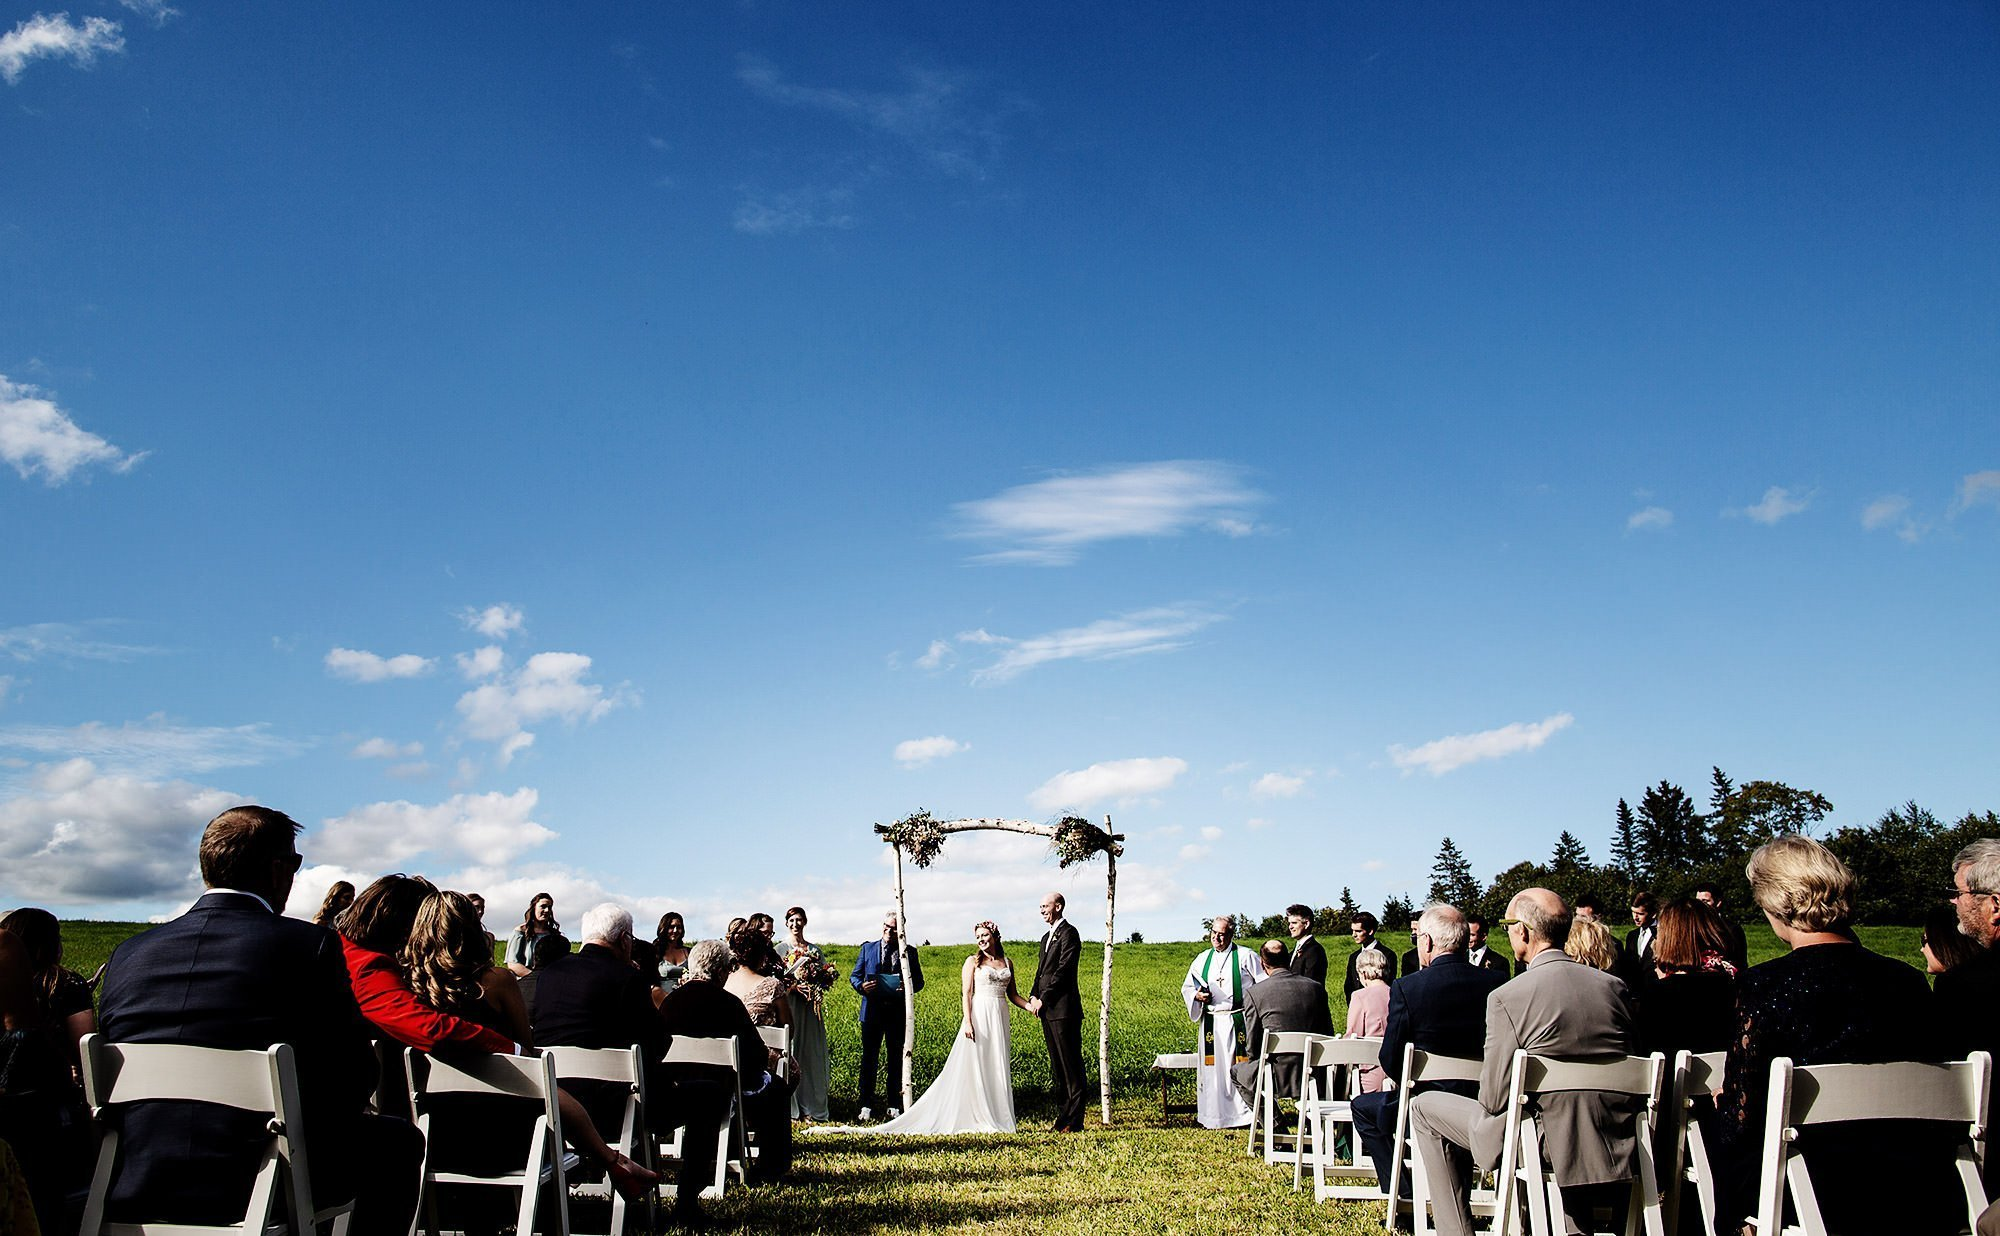 Vermont Family Farm Wedding  I  The wedding ceremony